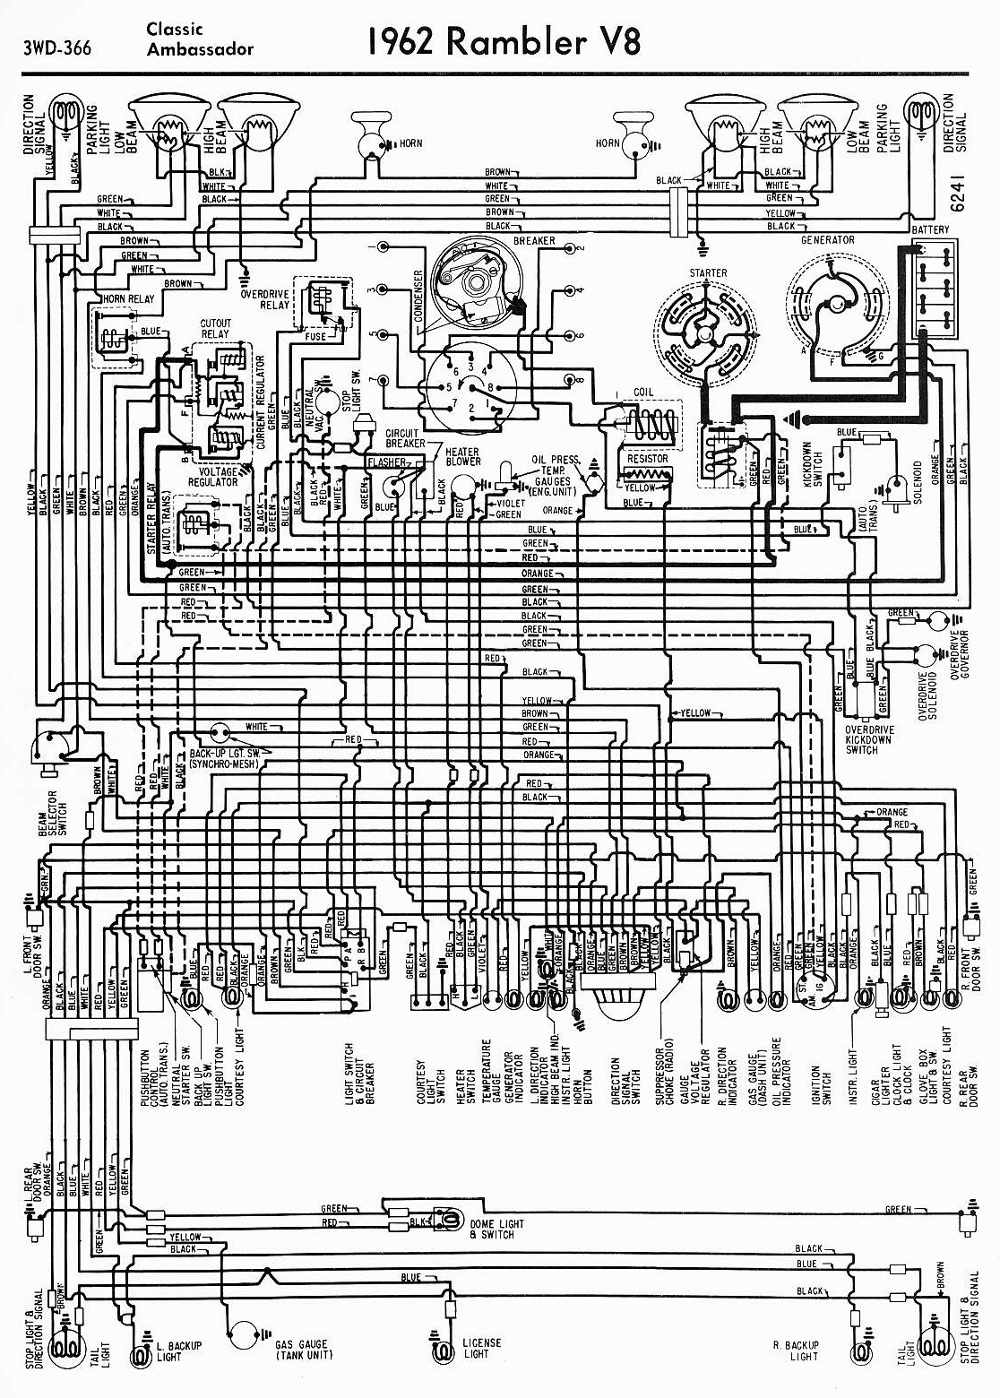 2016 ford transit wiring diagram 2016 ford transit wiring diagram solidfonts on 2016 ford transit wiring diagram